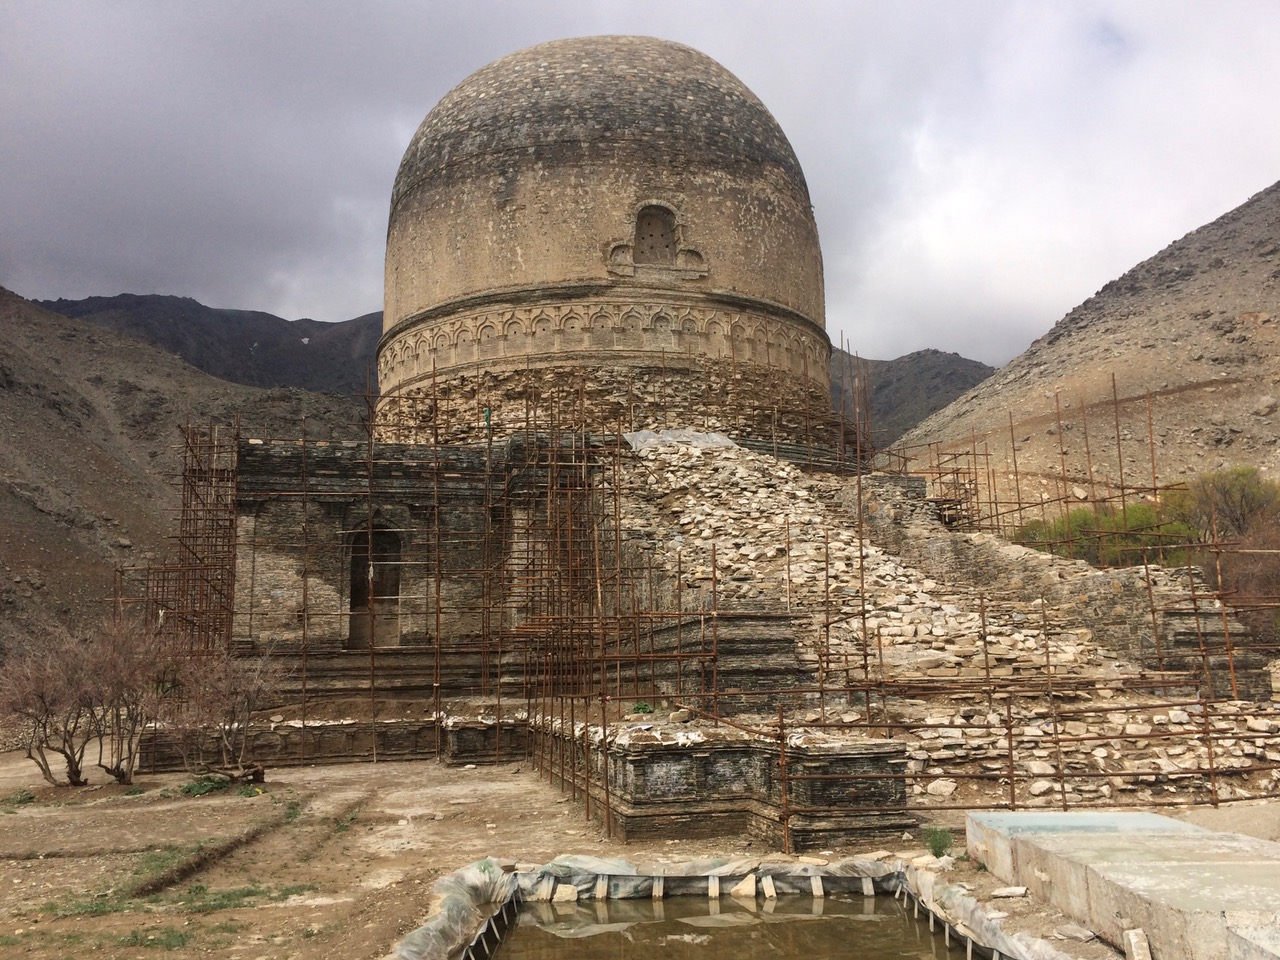 TThe front (east-facing) view of Topdara stupa from April 2019 after ACHCO excavated the base of the stupa. Photo: Jelena Bjelica, 2019.